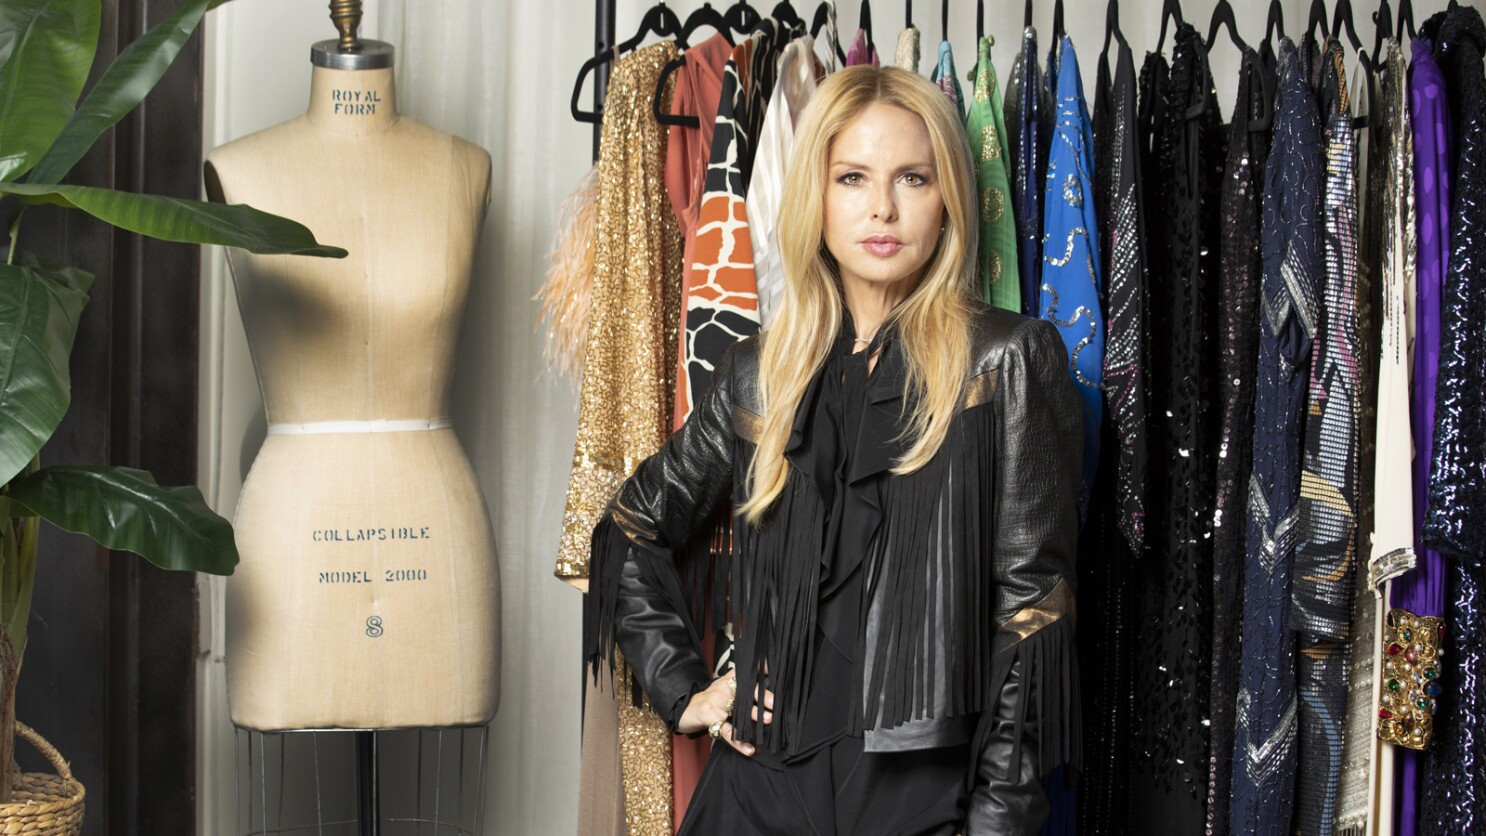 Rachel Zoe Sets Up Shop At Palisades Village To Offer Her Favorite Vintage Goods And More Los Angeles Times